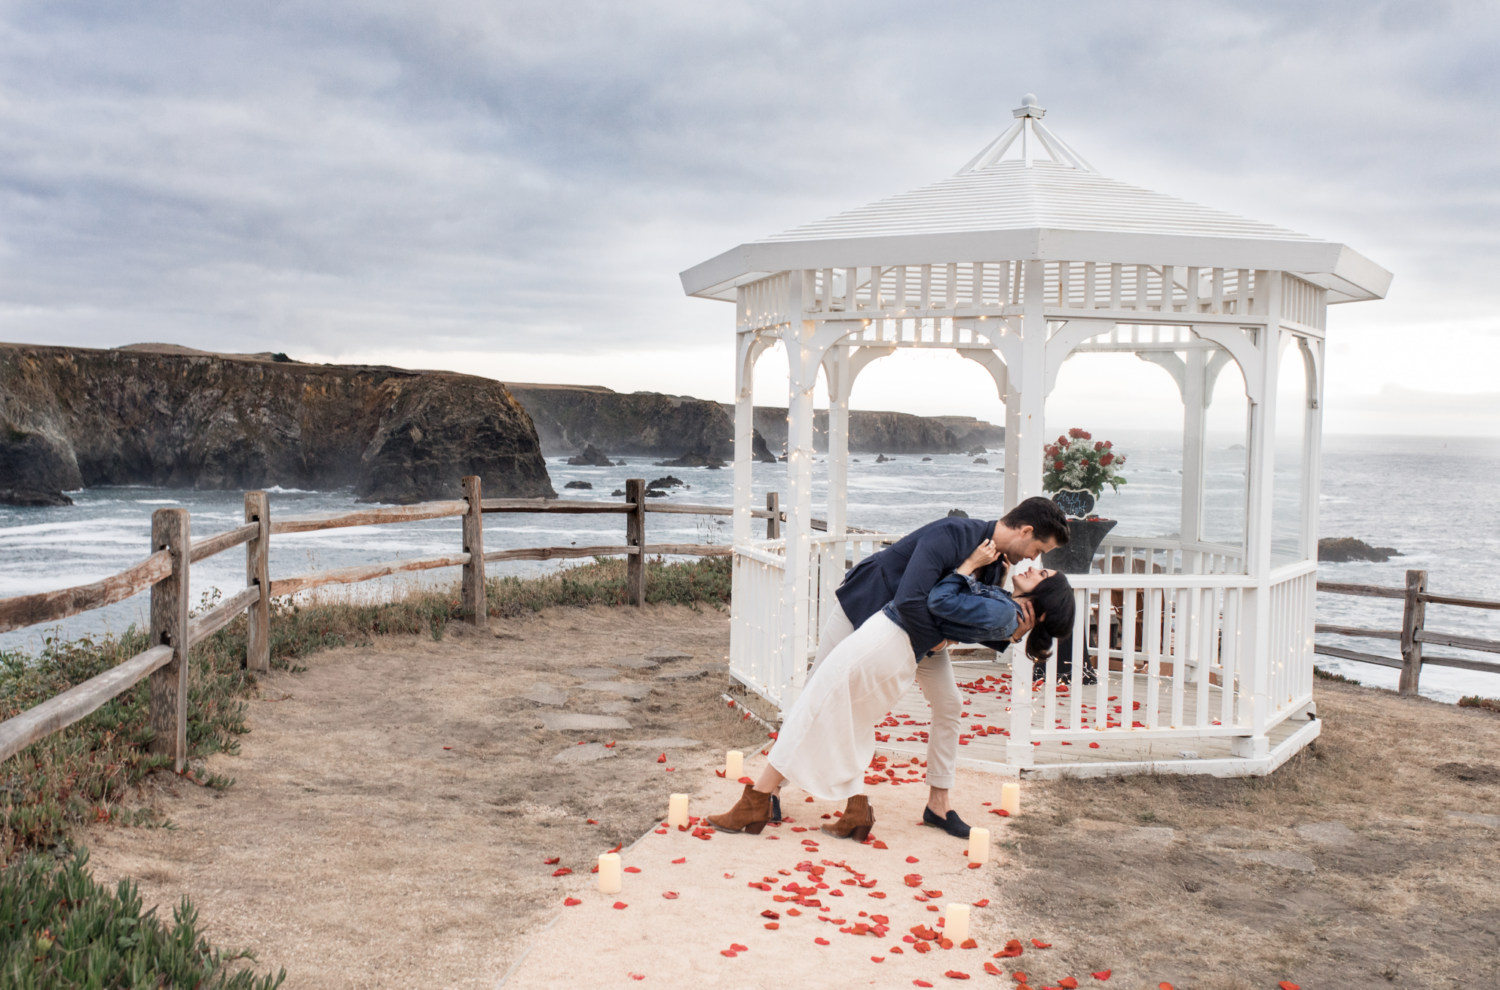 Wade Poezyn and Haley Scott engagement in Mendocino